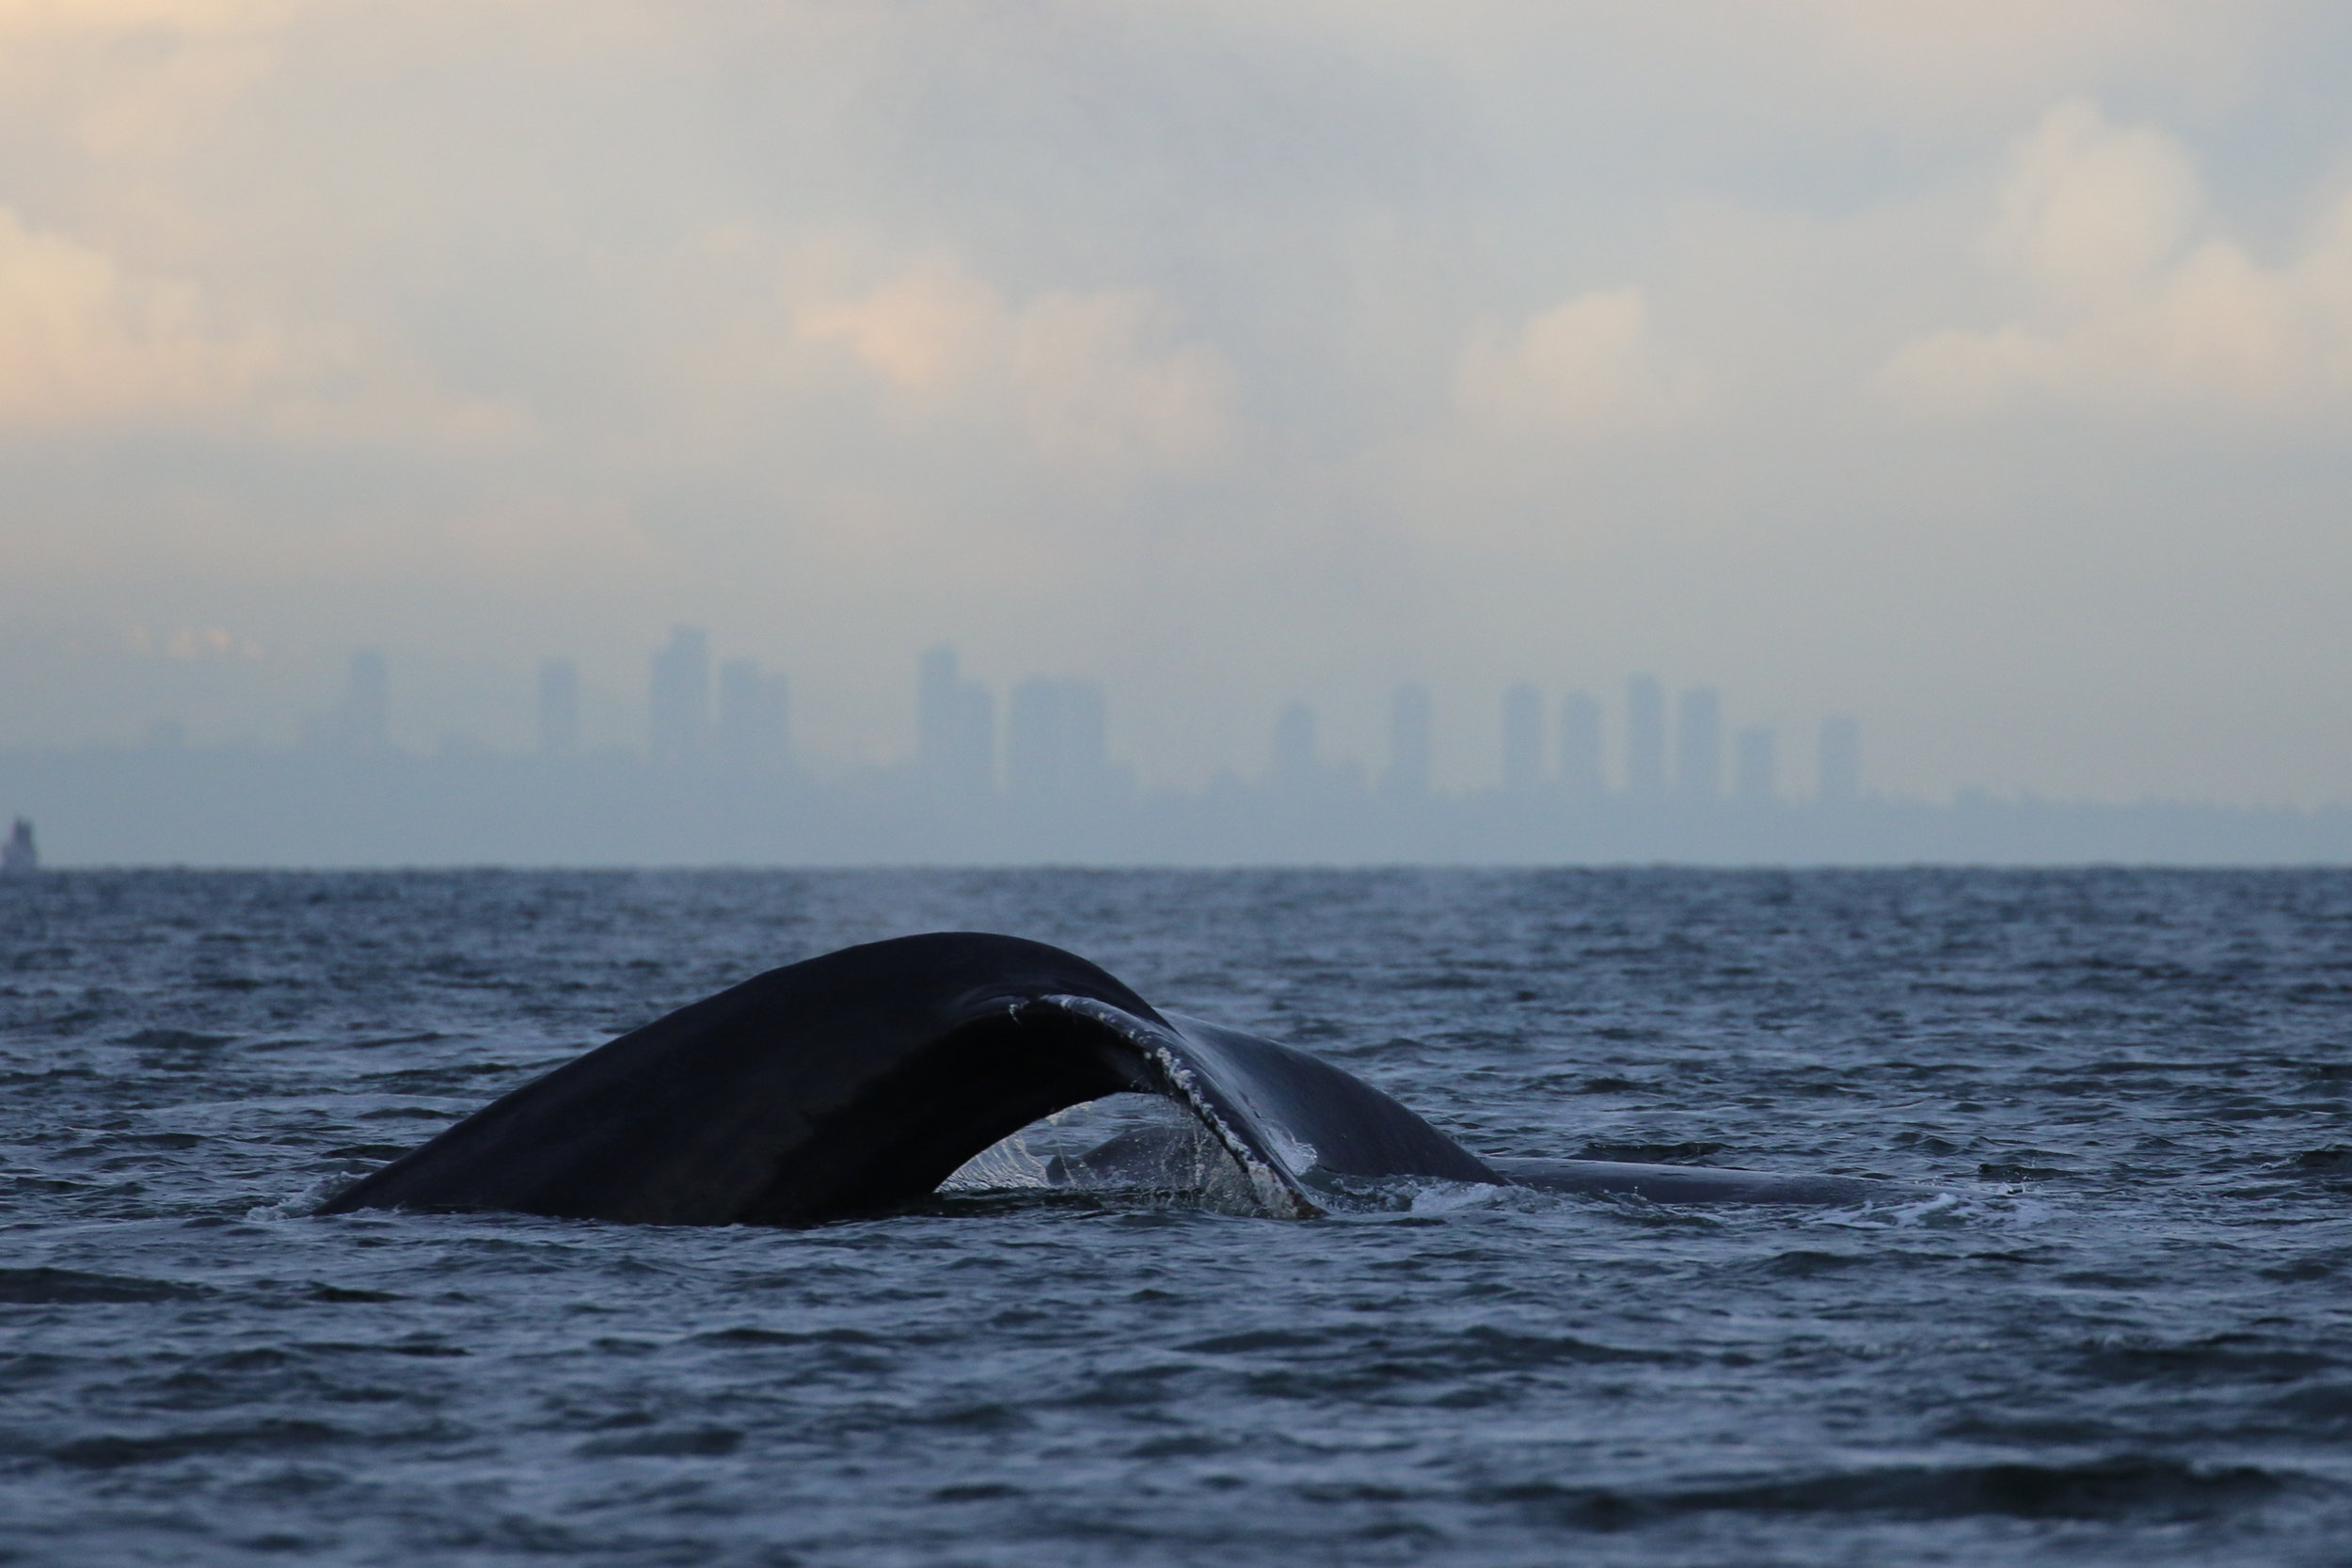 Another two humpbacks with Vancouvers skyline in the background. Photo by Val Watson.